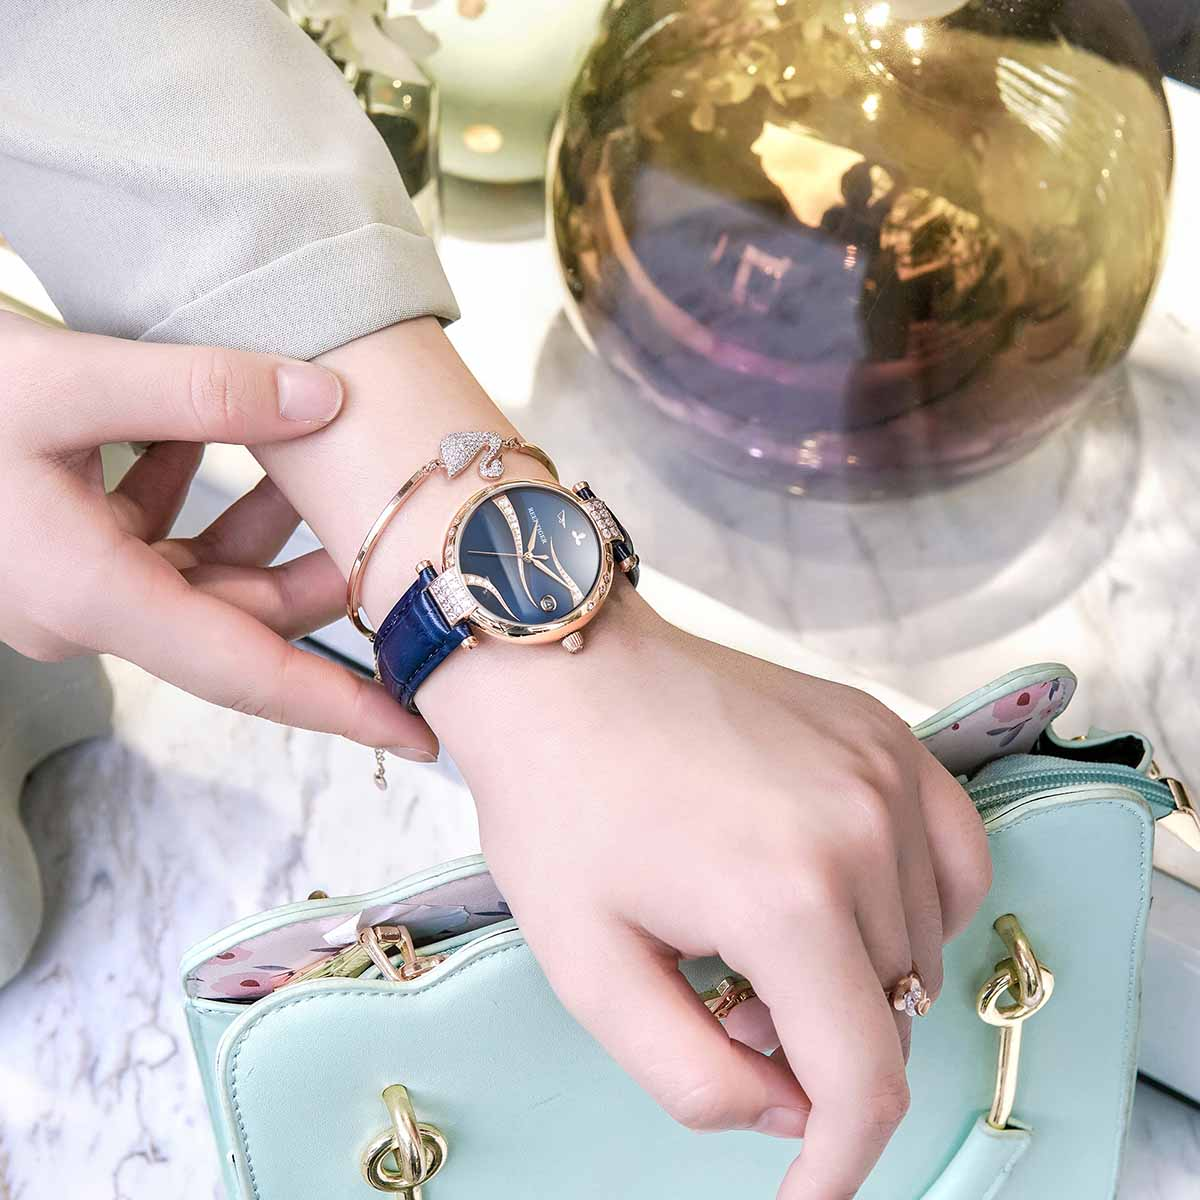 Reef Tiger/ RT Diamonds Automatic Leather Band Fashion Women Rose Gold Case Stainless Steel Luxury Ladies Watches RGA1589 enlarge